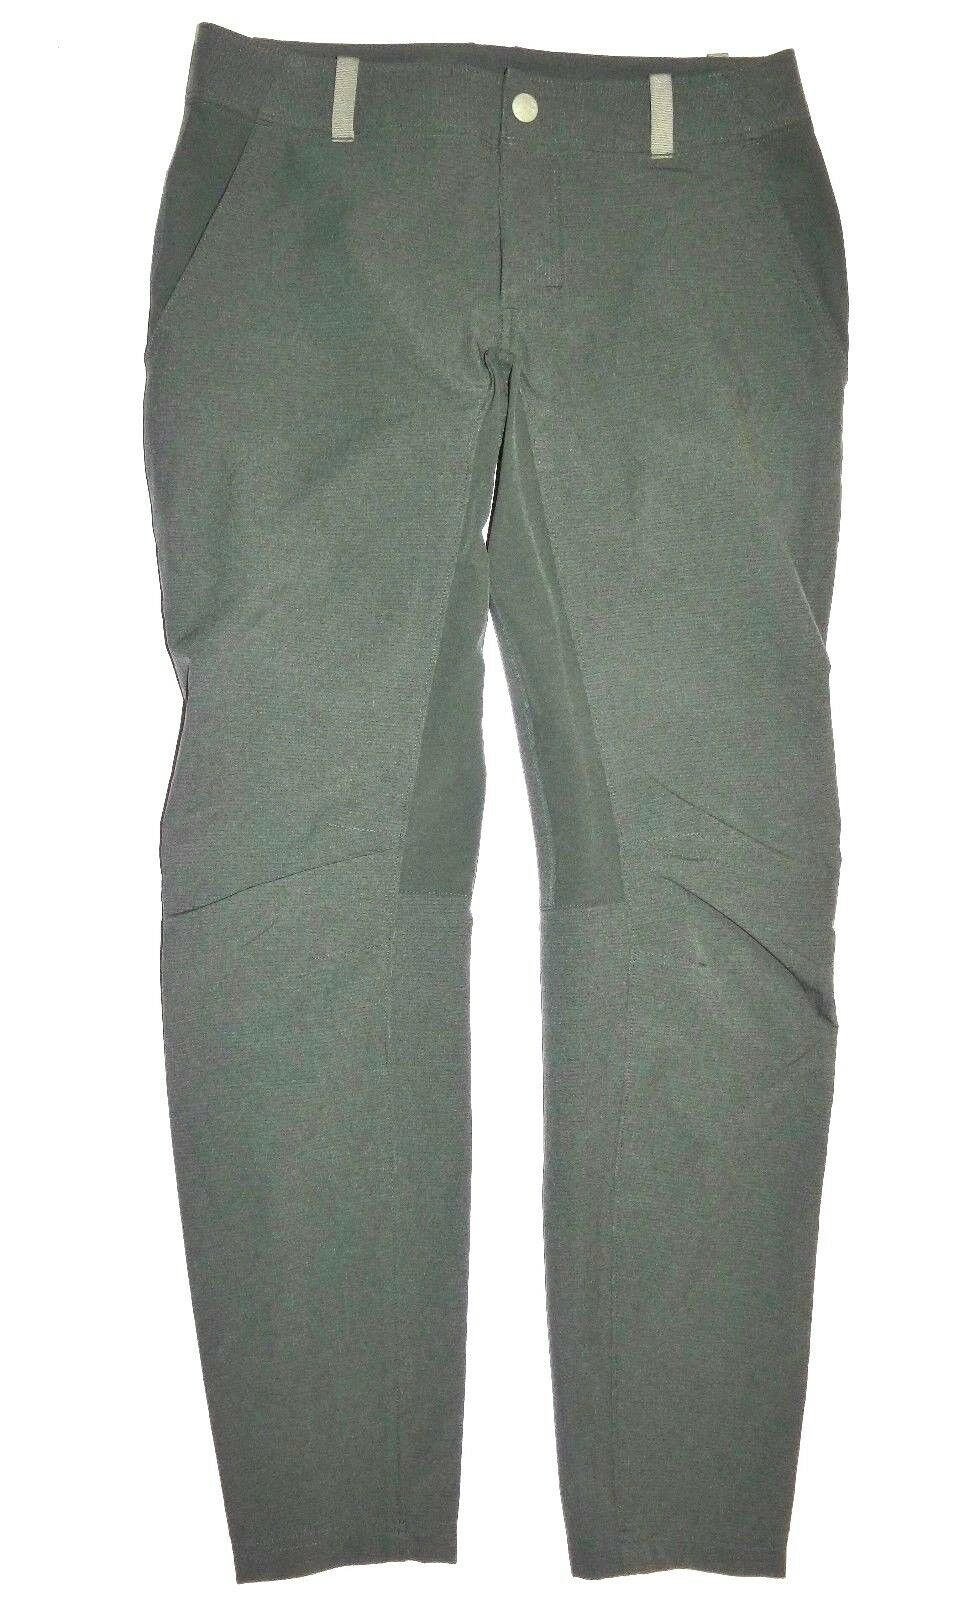 New Under Armour Damenschuhe Storm HeatGear Polyester Polyester Polyester Hiking Pants Größe 4 37e0d6